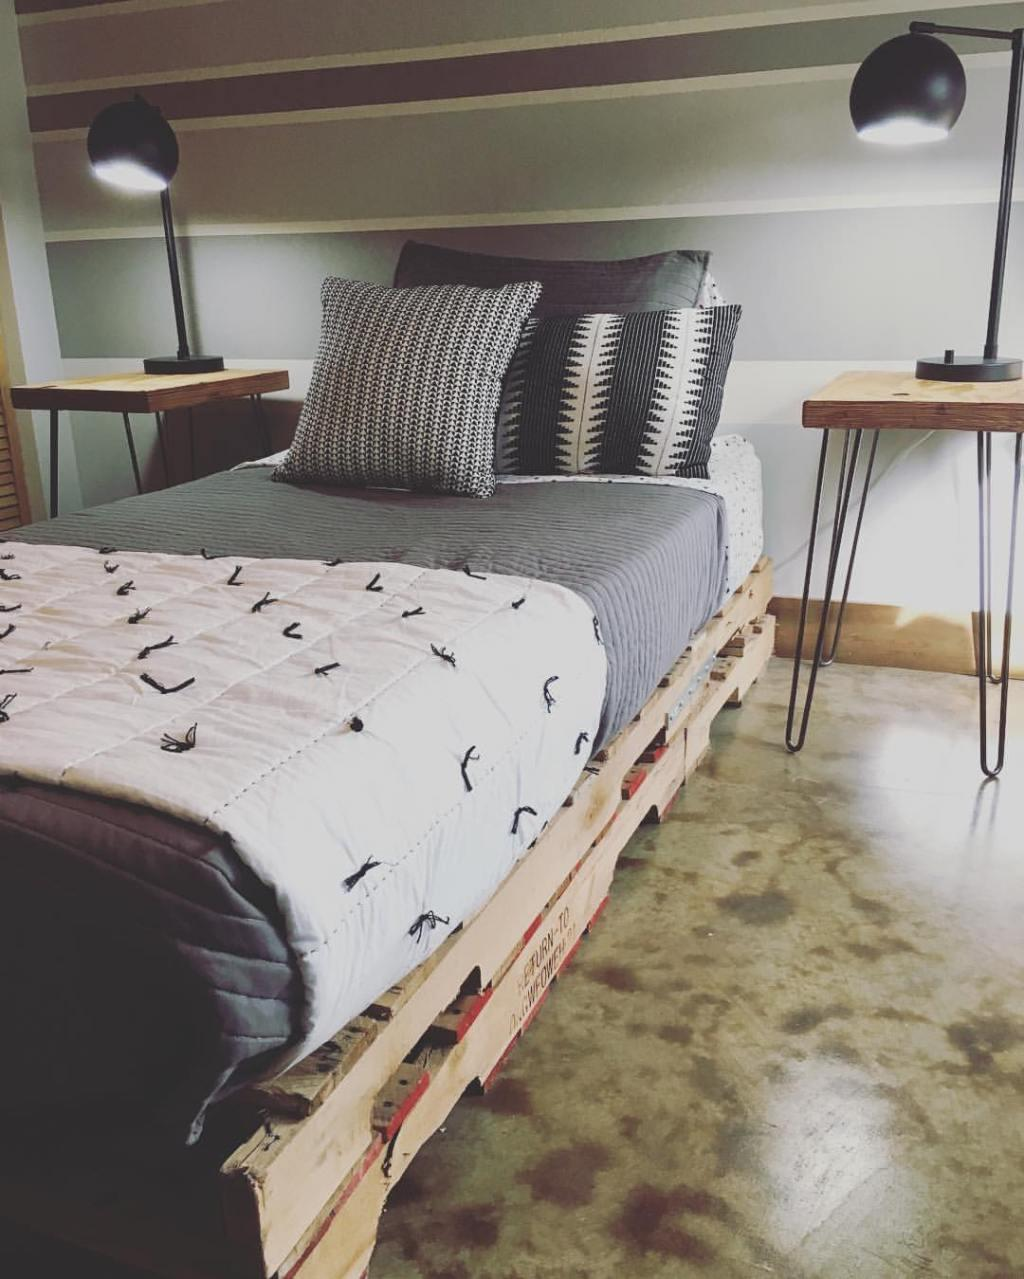 Pallet bed: 60 models, photos and walkthrough 22